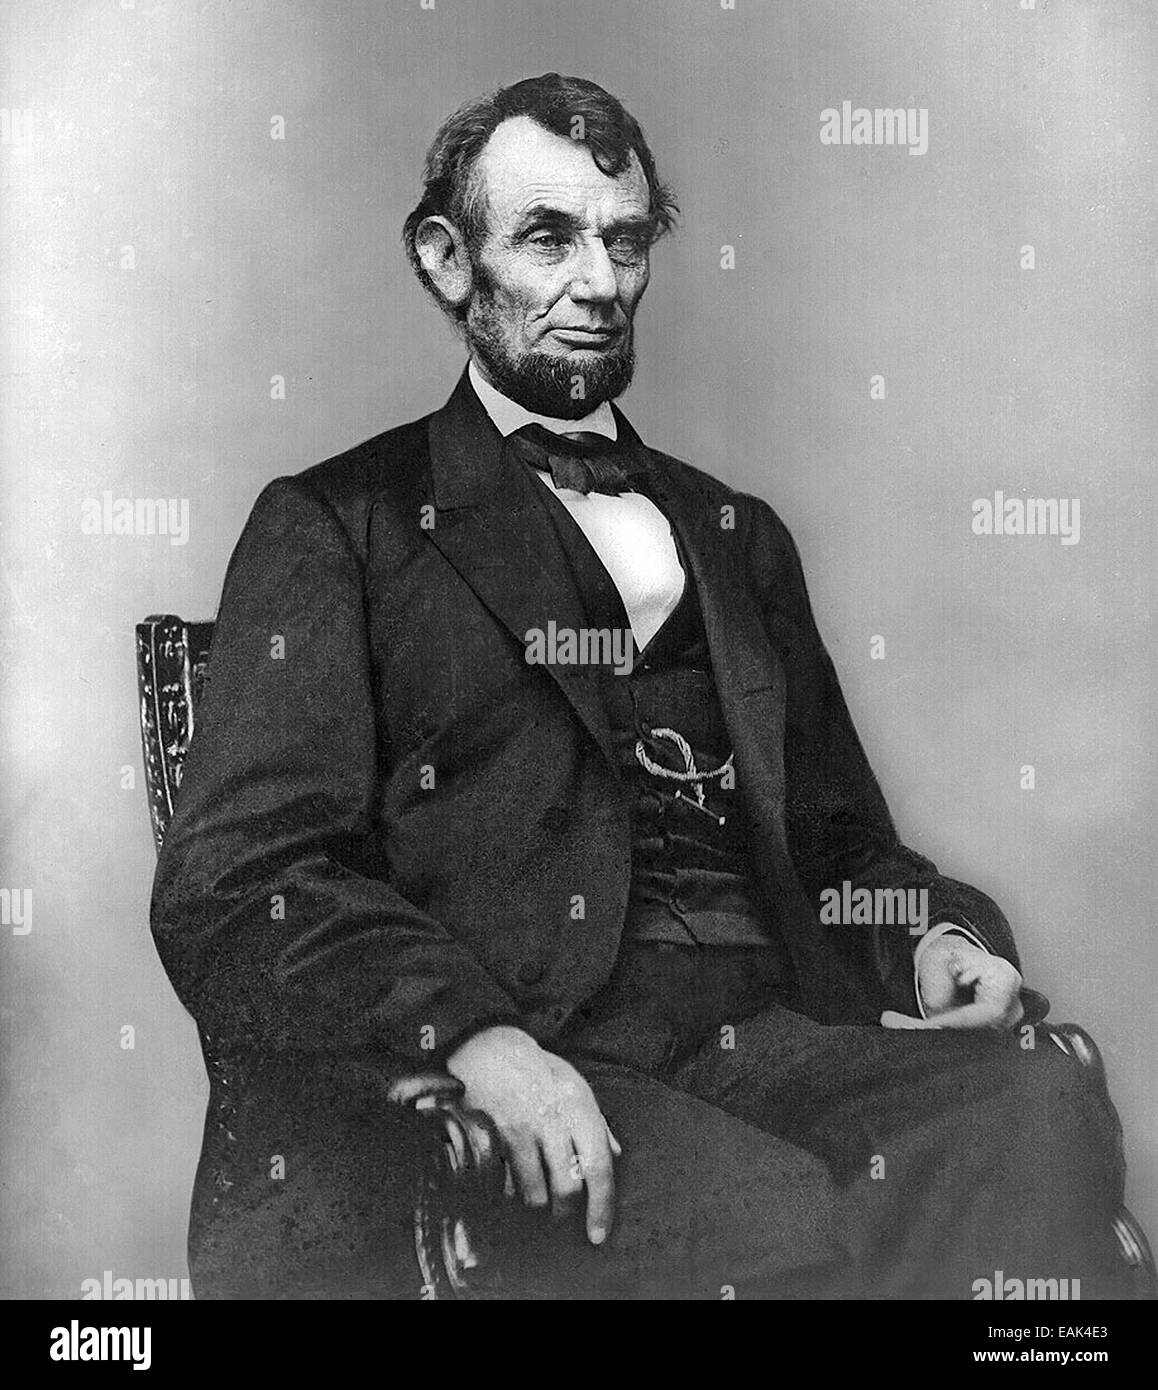 ABRAHAM LINCOLN (1809-1865) American President photographed by Matthew Brady 9 February 1864 - Stock Image